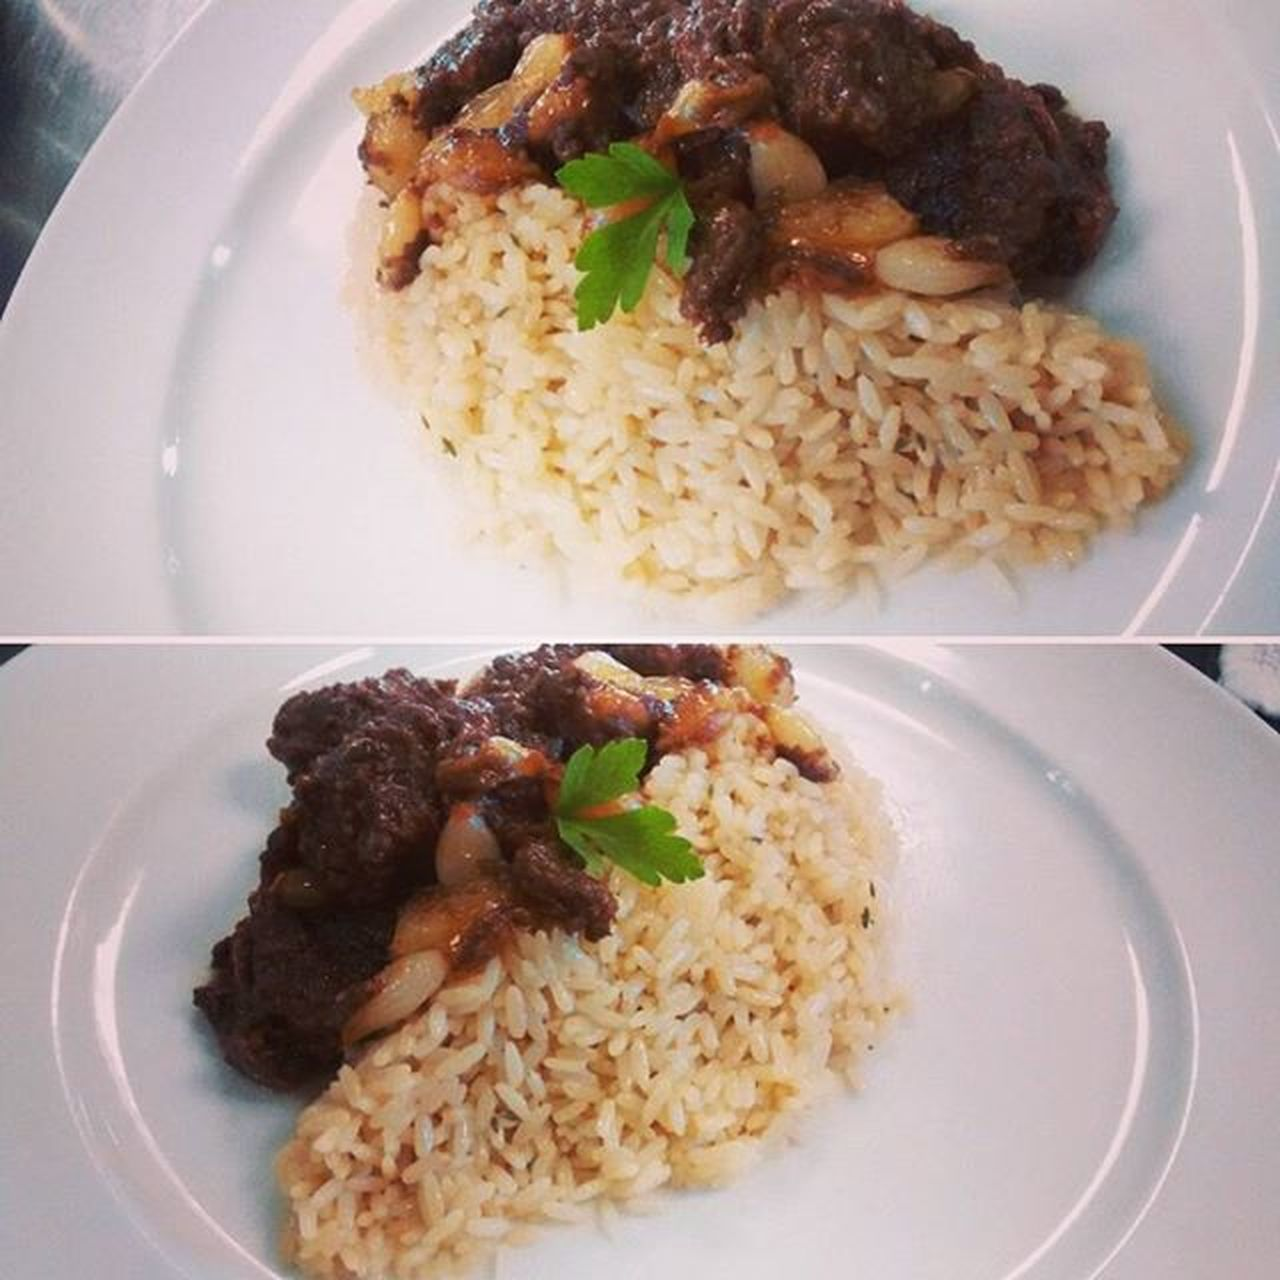 ~to much ingredients to name rich pork with mush,onion pearls,redwine side of rice~ mm so good! Rice Asianfood Pork Foodgasm Yummy Sogood Plate Calinary Rich Mouthwatering